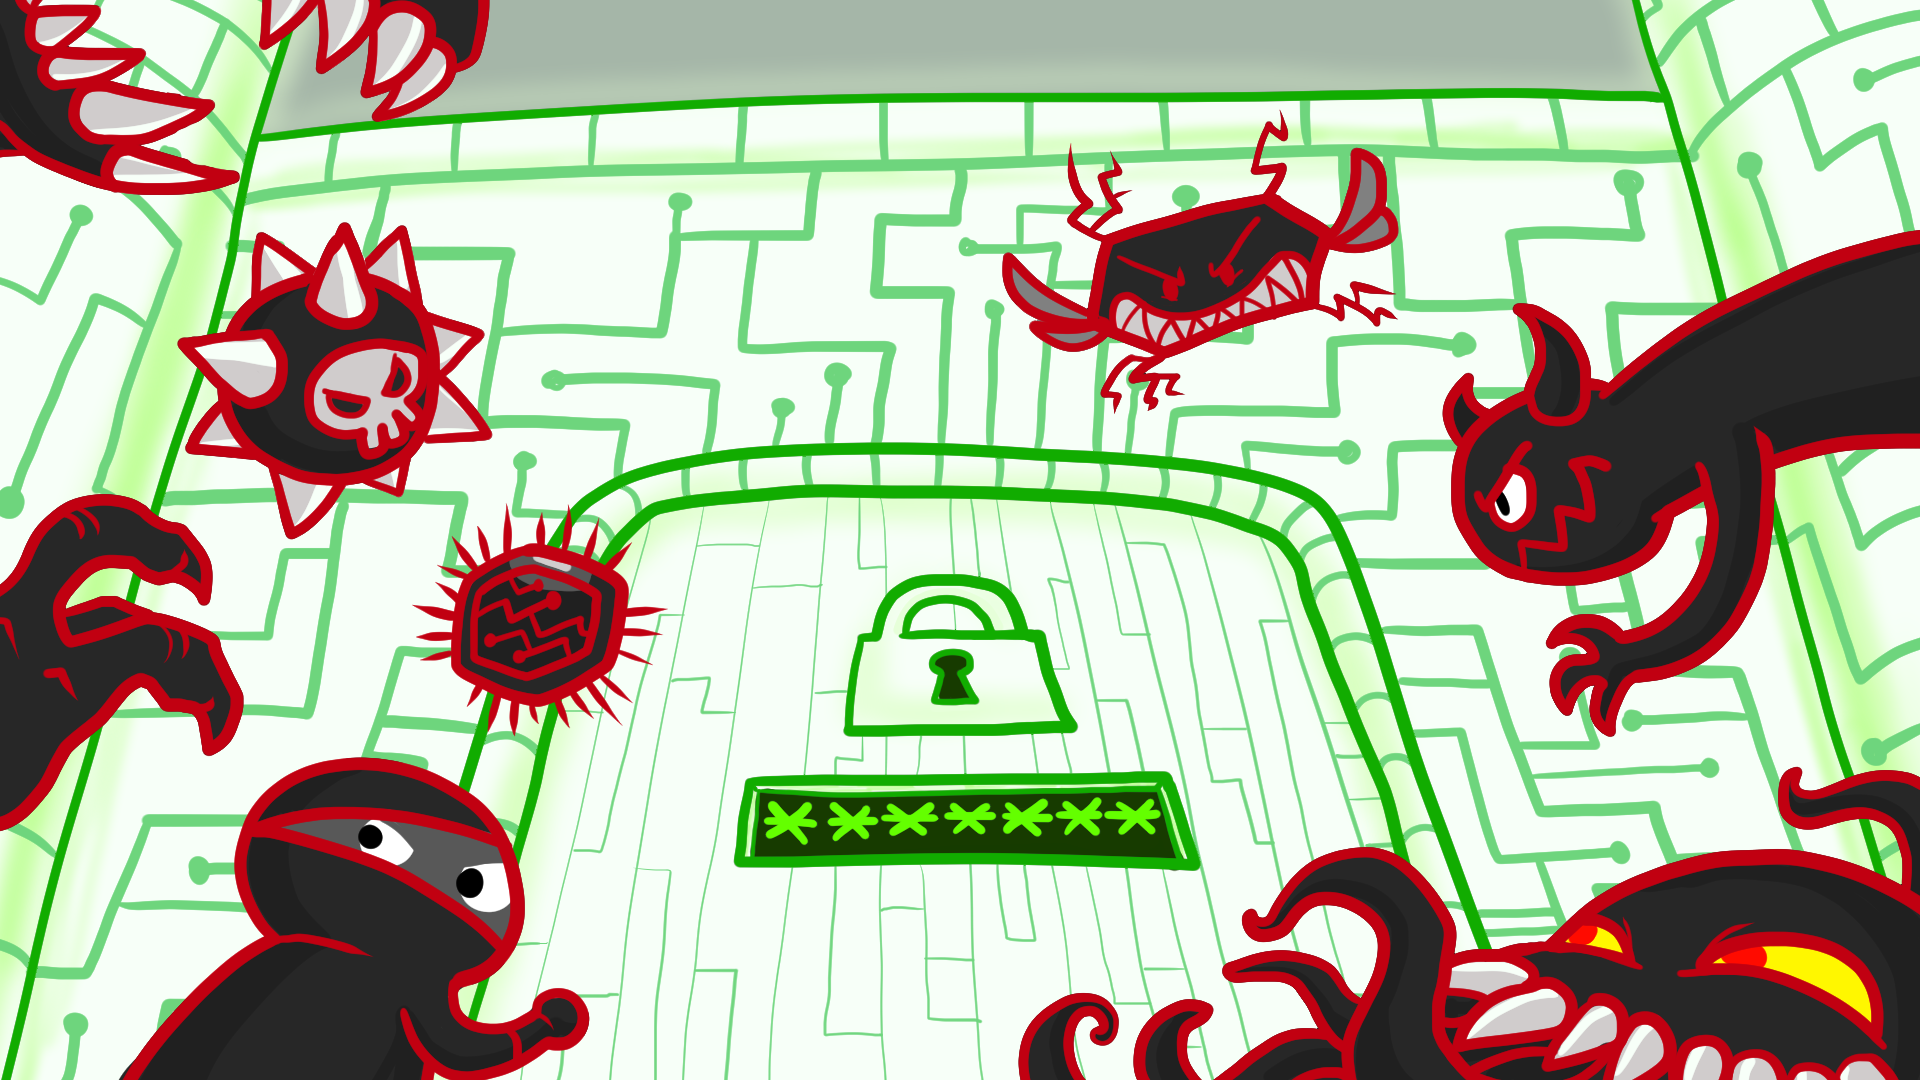 Illustration of monsters, robots, and villains trying to enter a door with a password dialog box on it